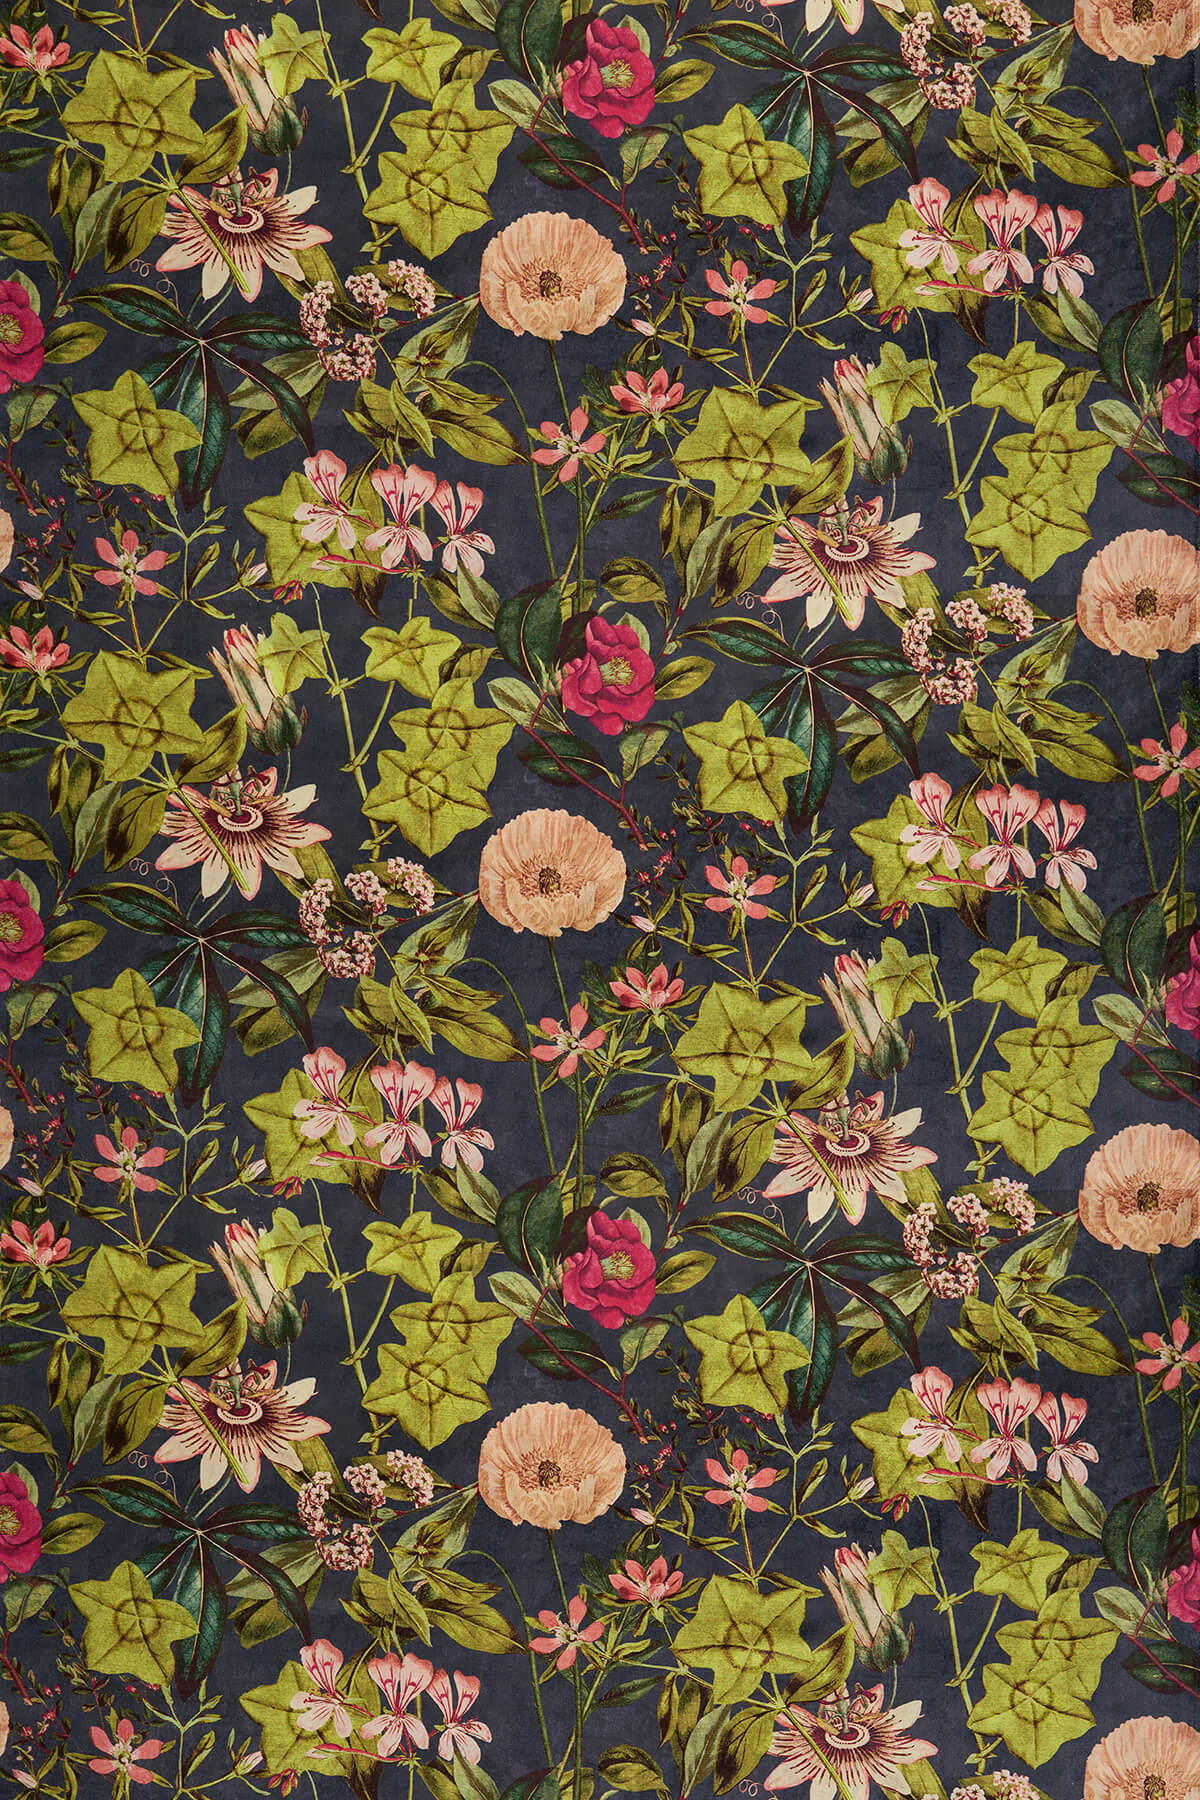 Clarke & Clarke Passiflora Midnight / Spice Fabric - Product code: F1304/03